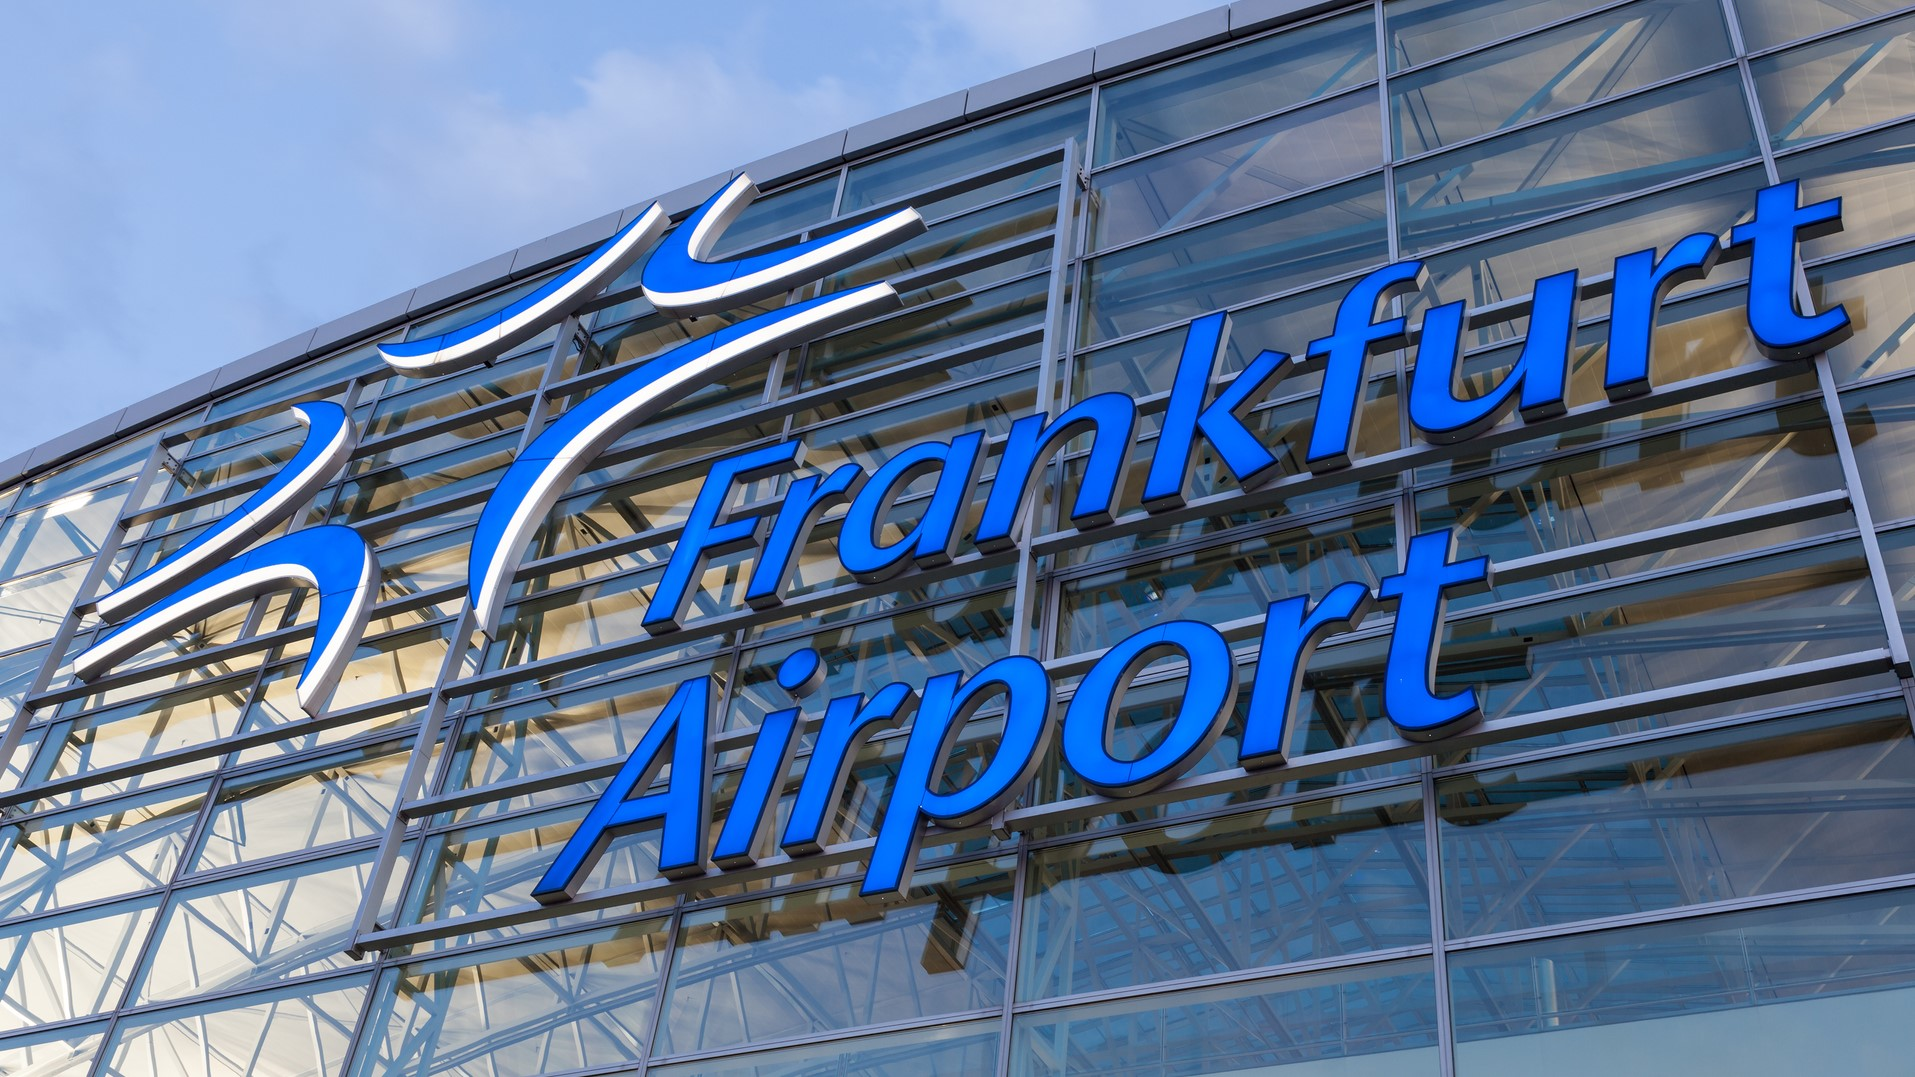 Frankfurt airports plays huge role in European Covid-19 relief 1